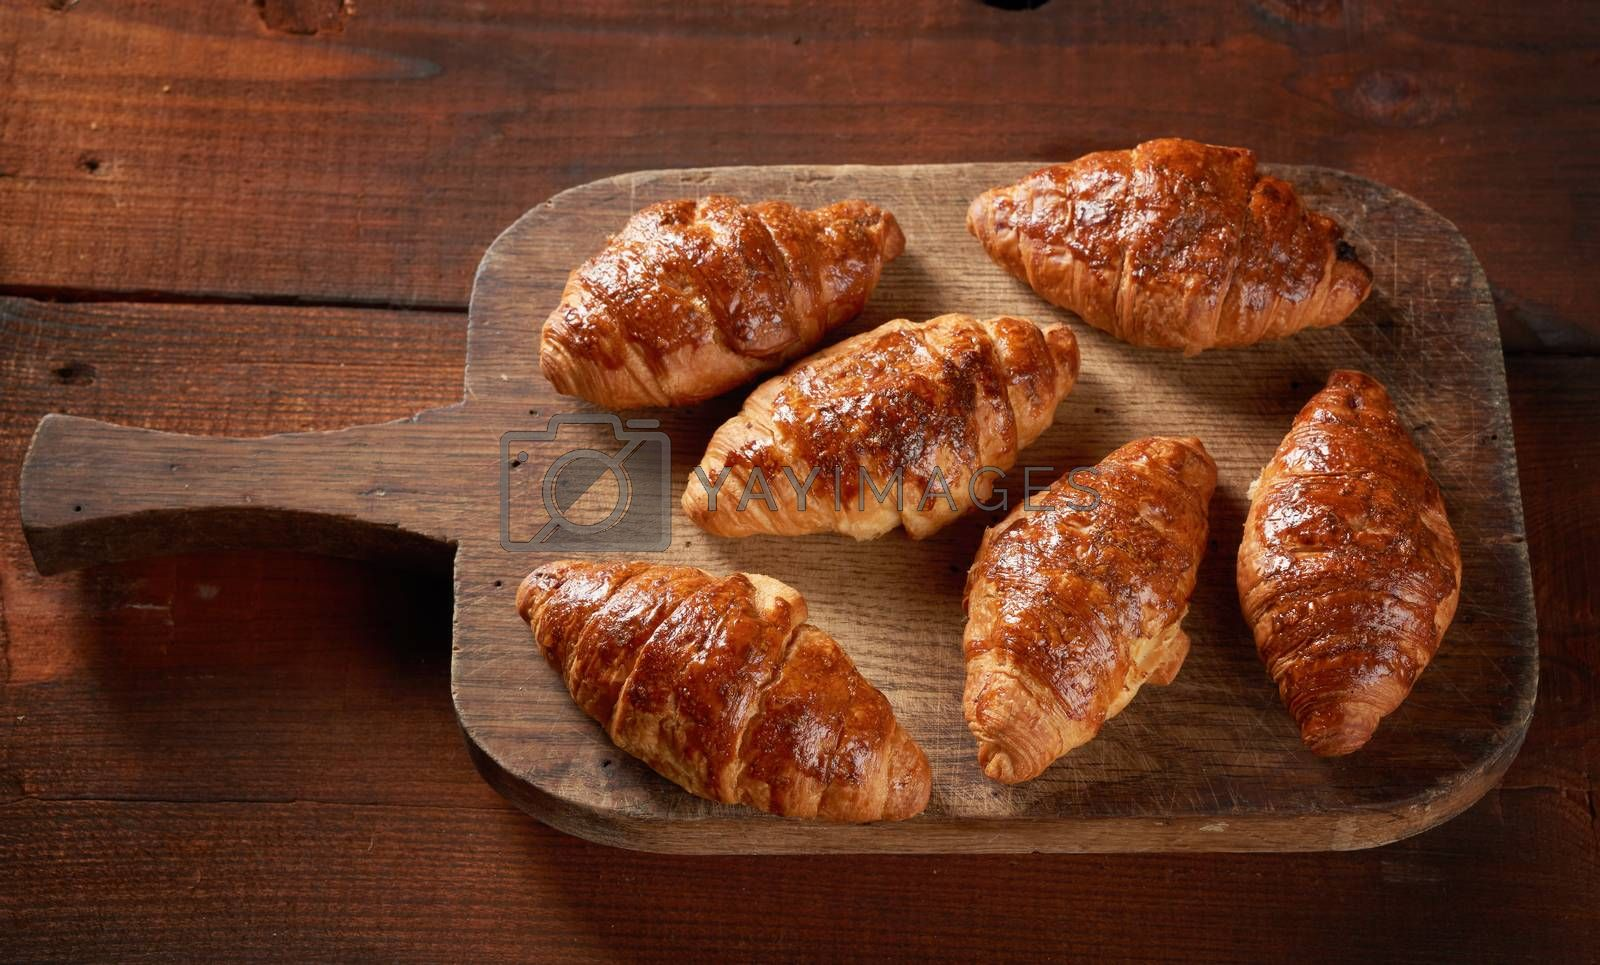 baked croissants on a wooden brown board, delicious and appetizing pastries, top view